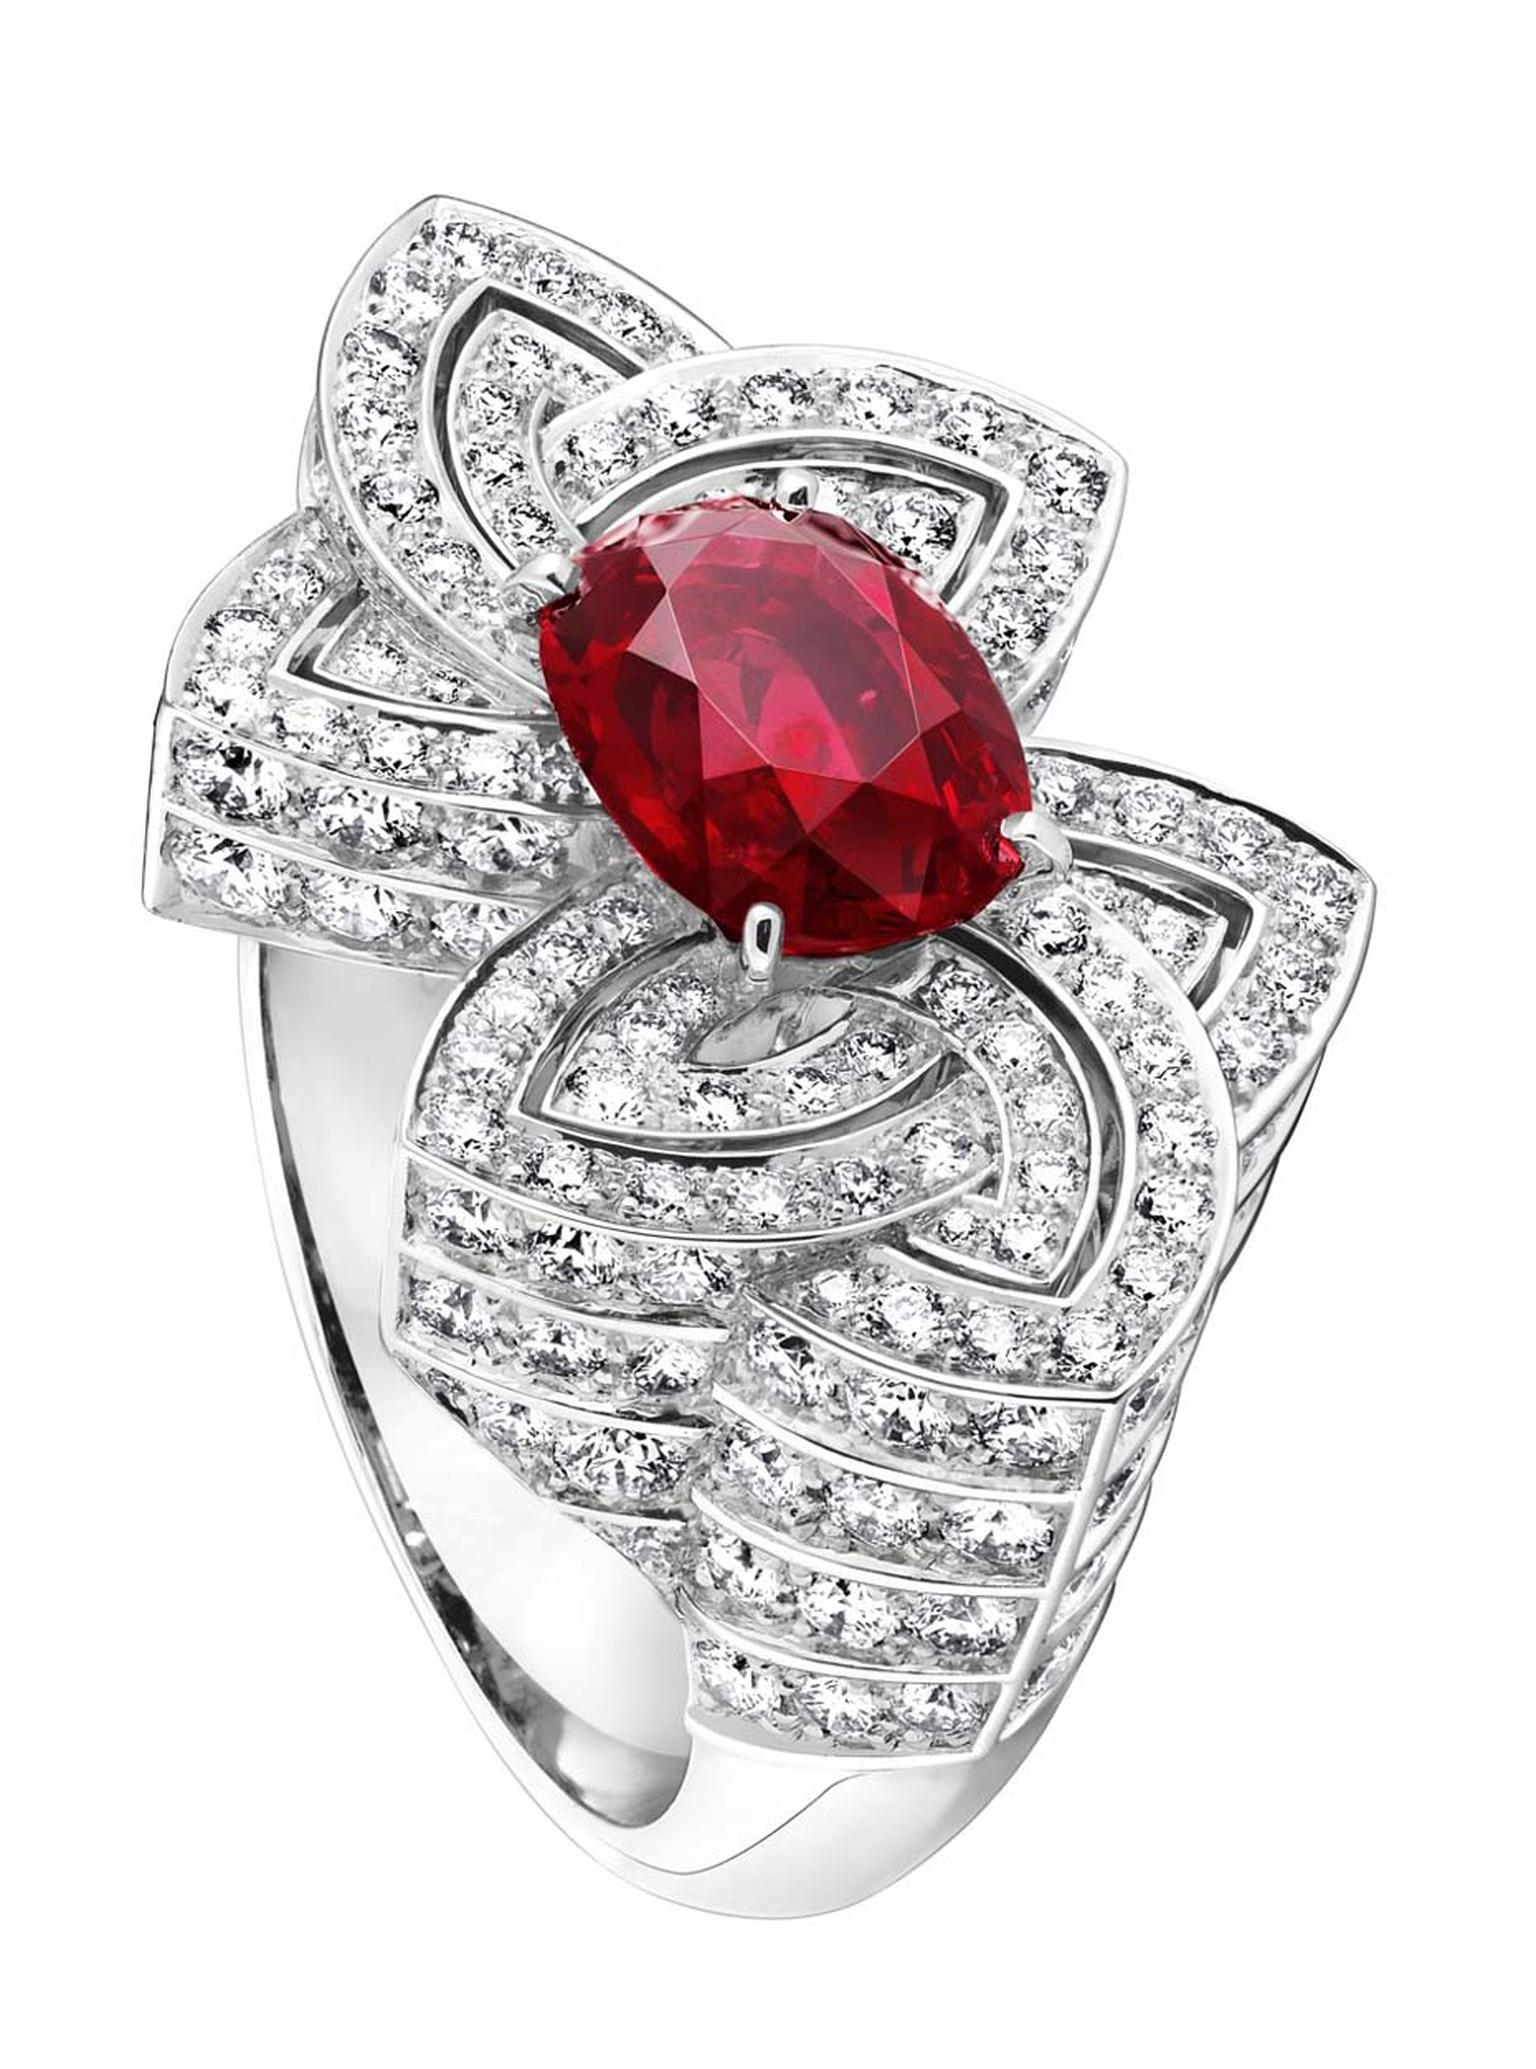 Louis Vuitton ring featuring a central African ruby, flanked by diamond-shaped petals.